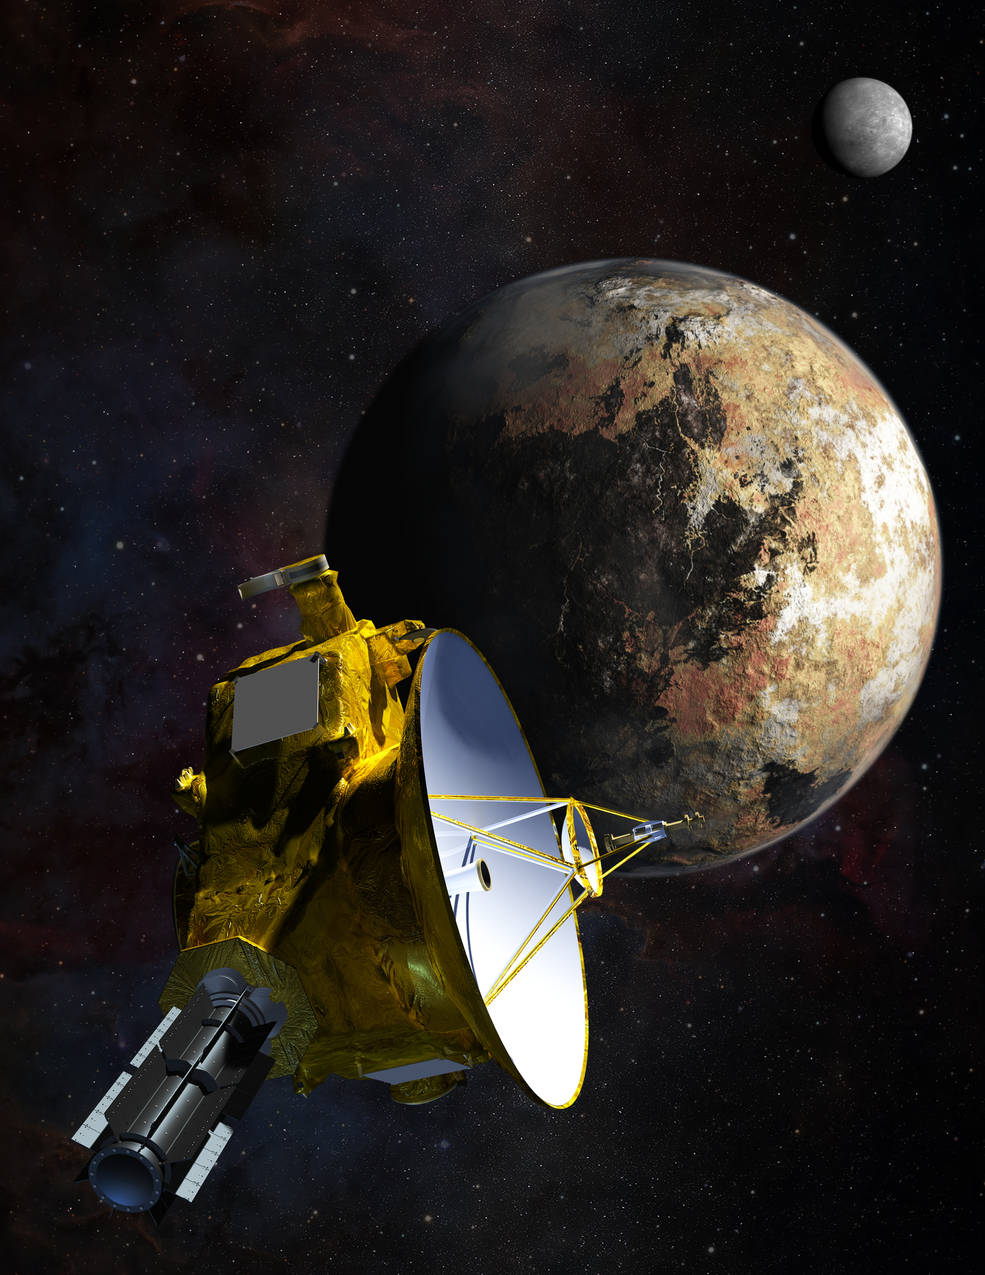 Artist's concept of the New Horizons spacecraft during the Pluto flyby. Credit: JHUAPL/SWRI